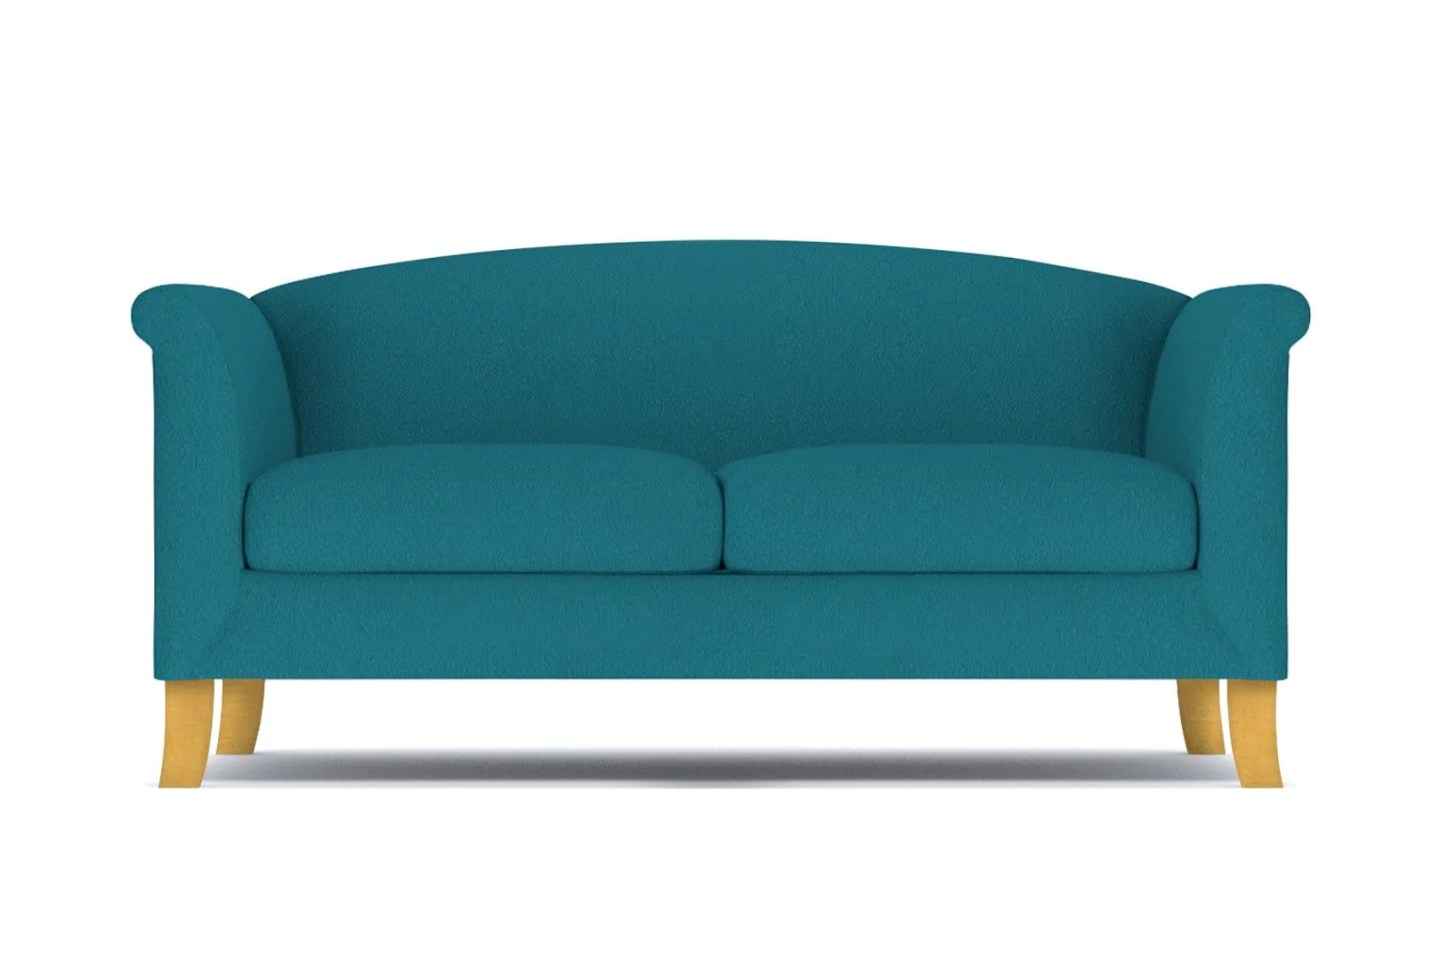 Albright Apartment Size Sofa - Blue -  Small Space Modern Couch Made in the USA - Sold by Apt2B